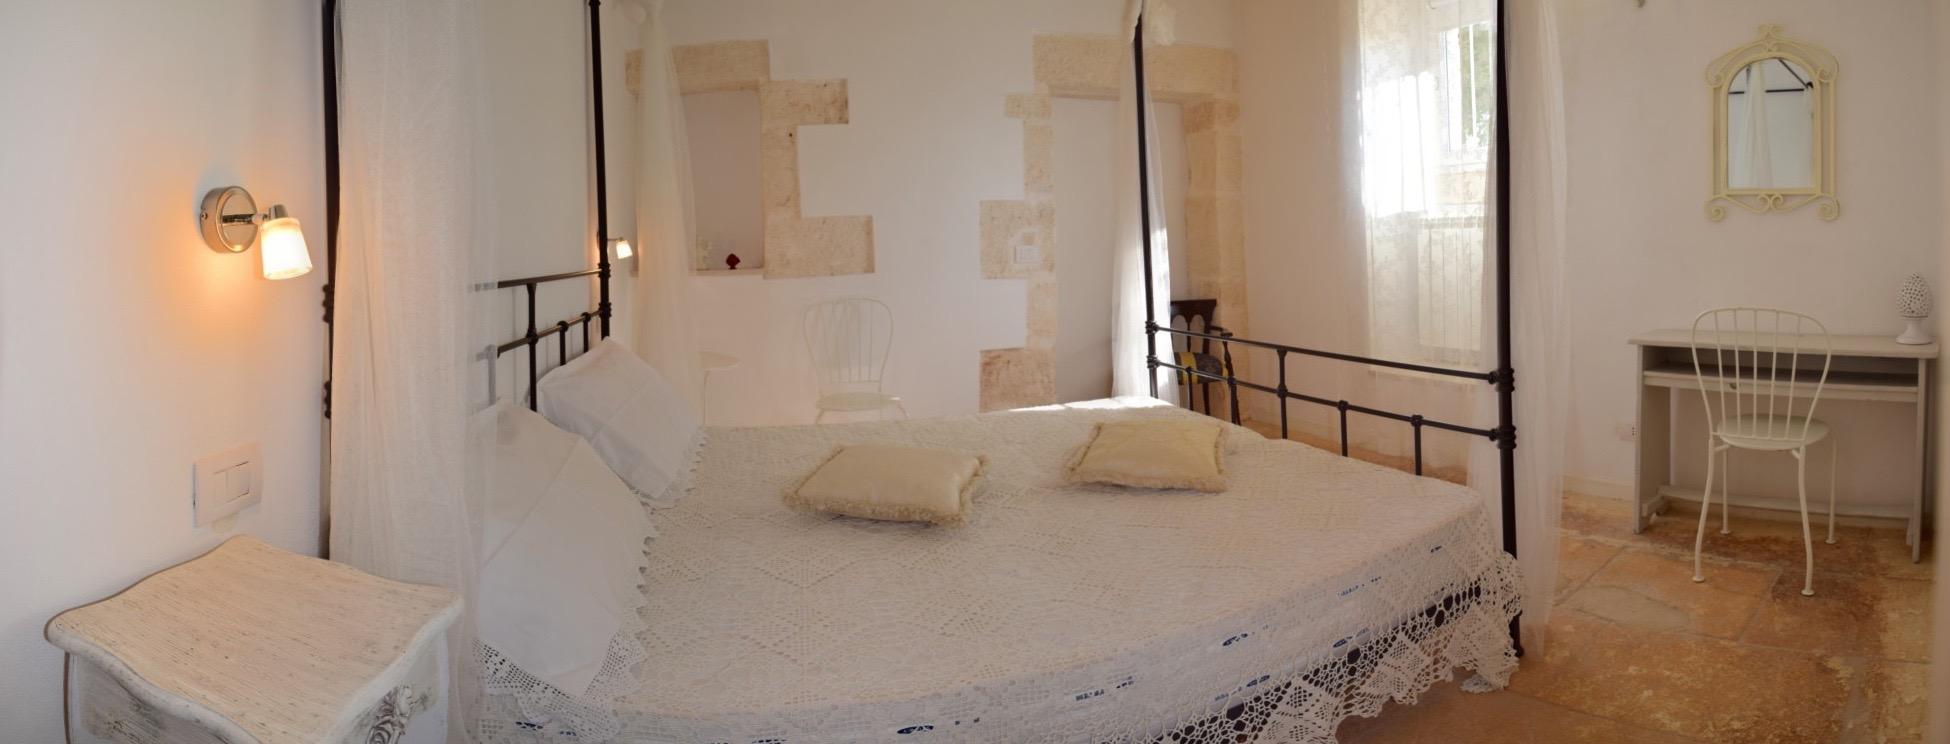 Bed and breakfast masseria belfiore ostuni for Bed and breakfast le bic